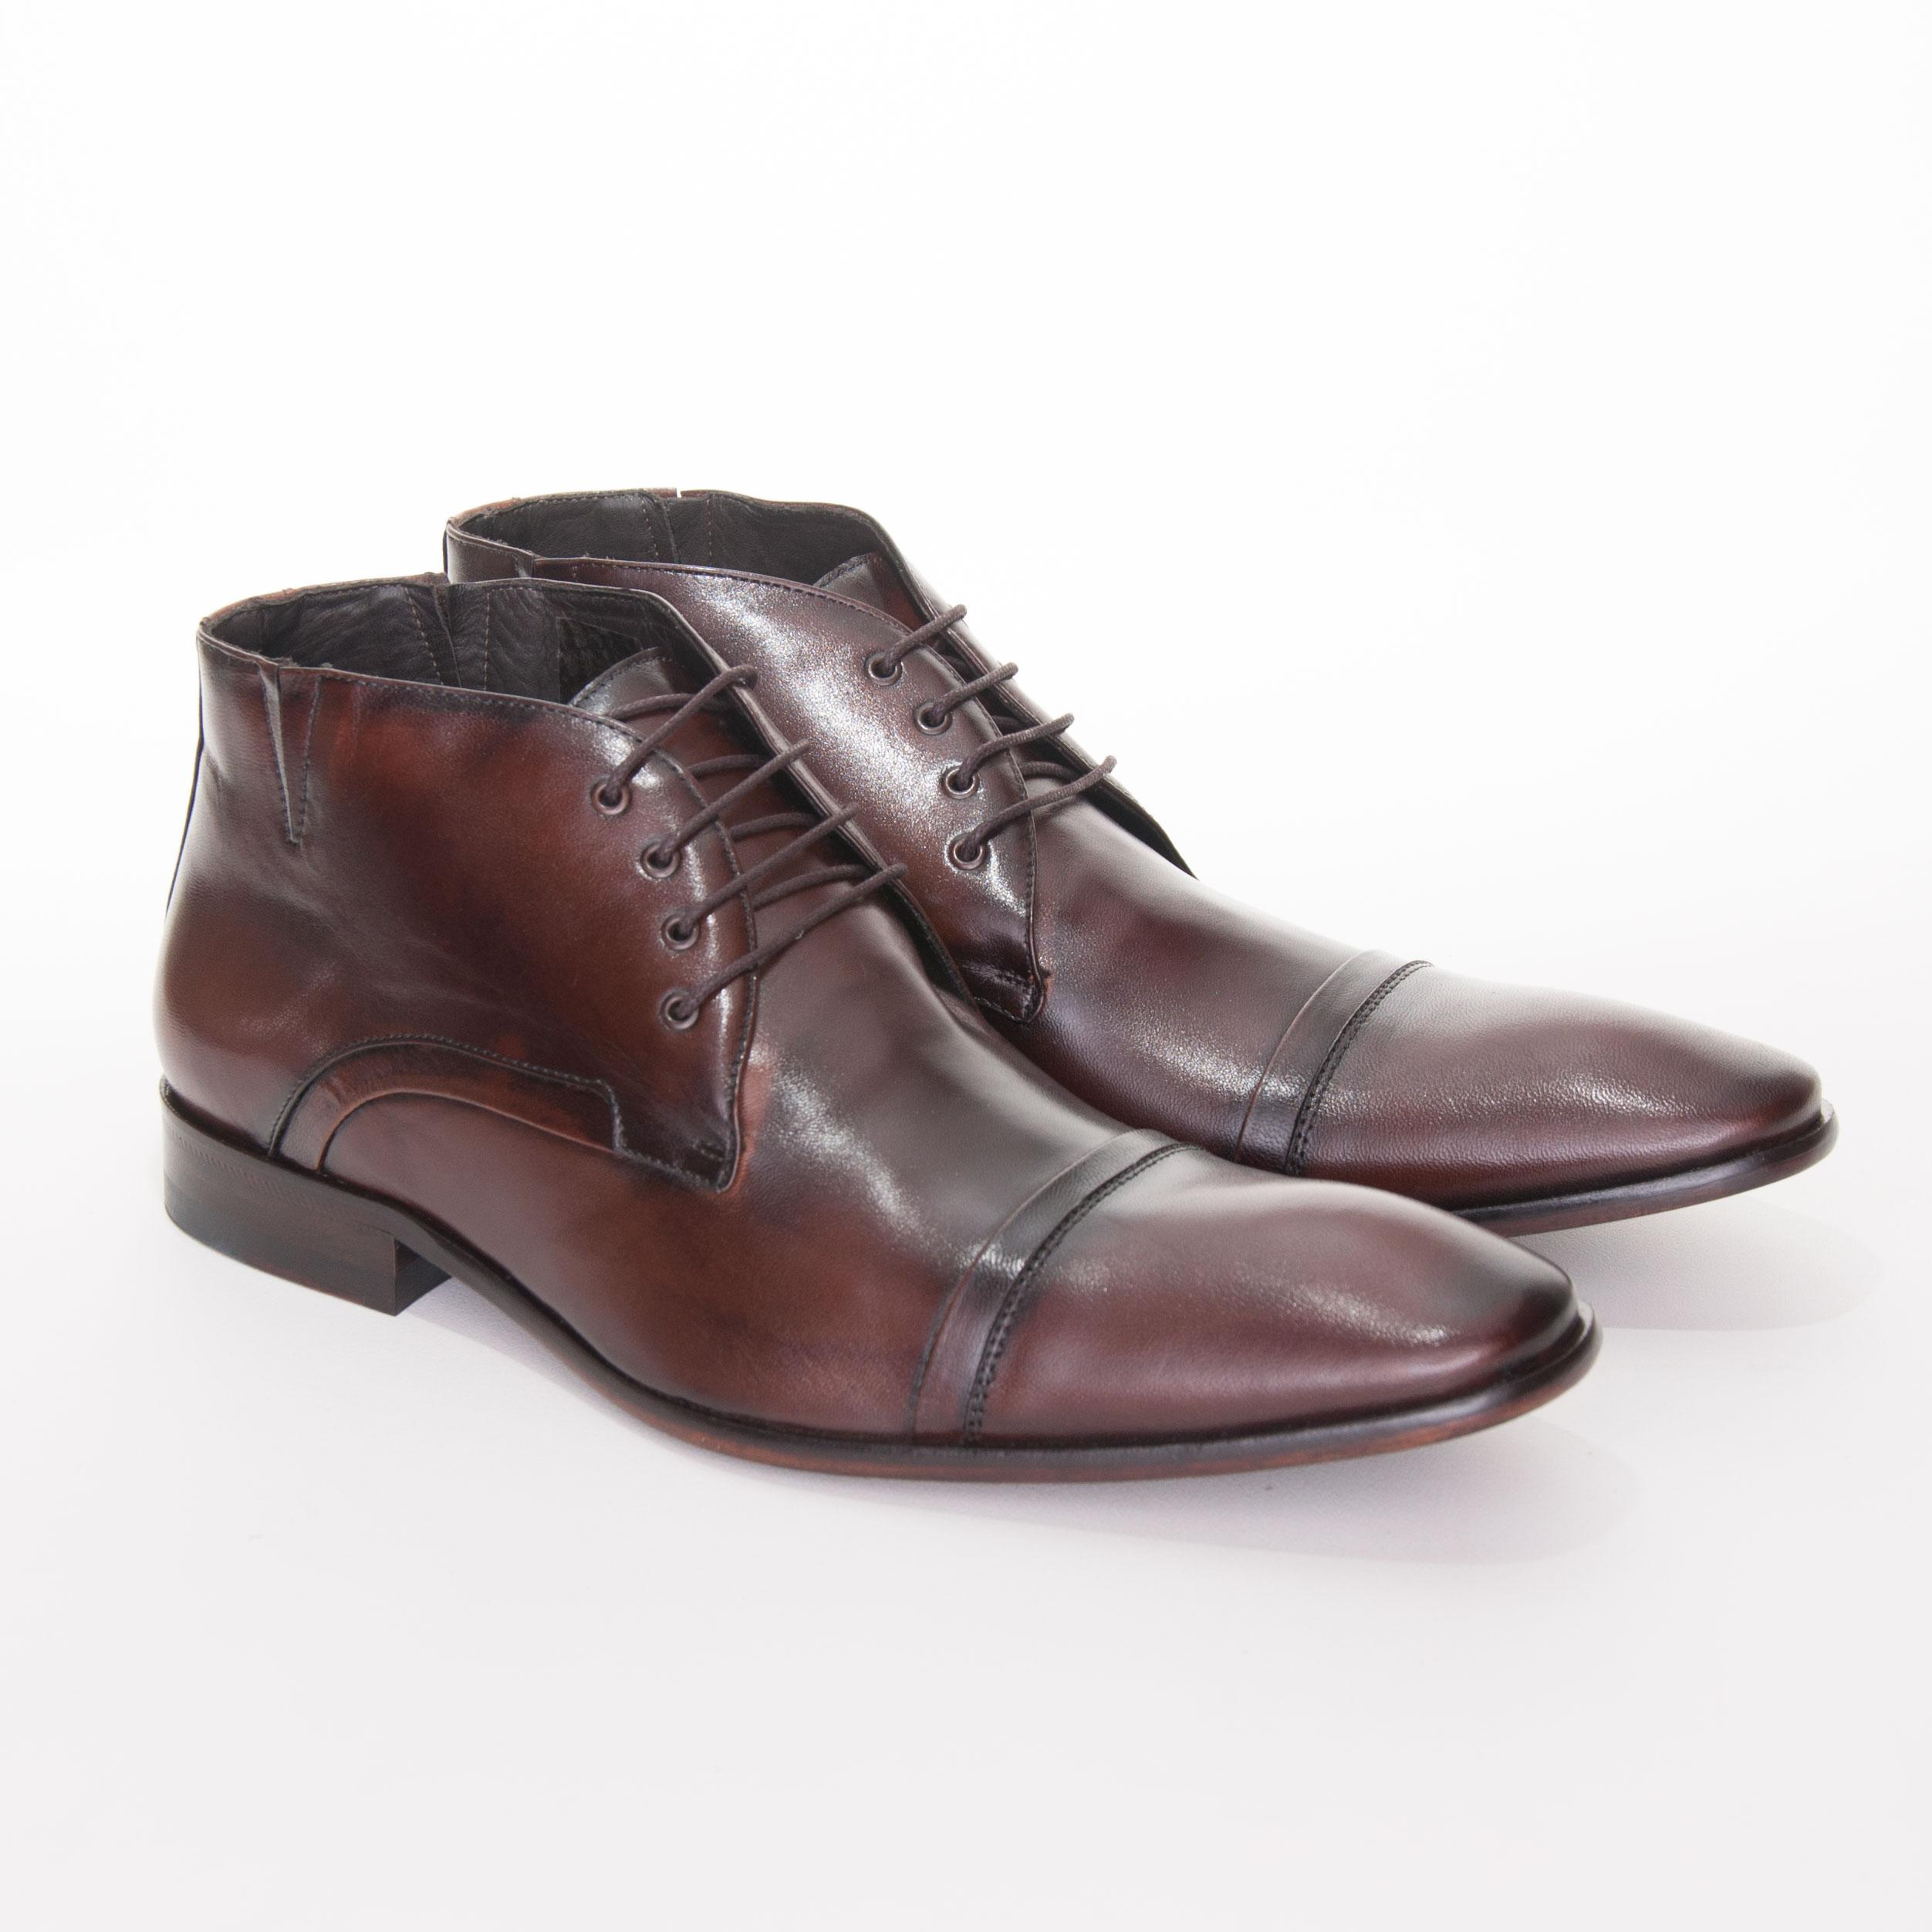 Gallery For gt Mens Brown Dress Boots